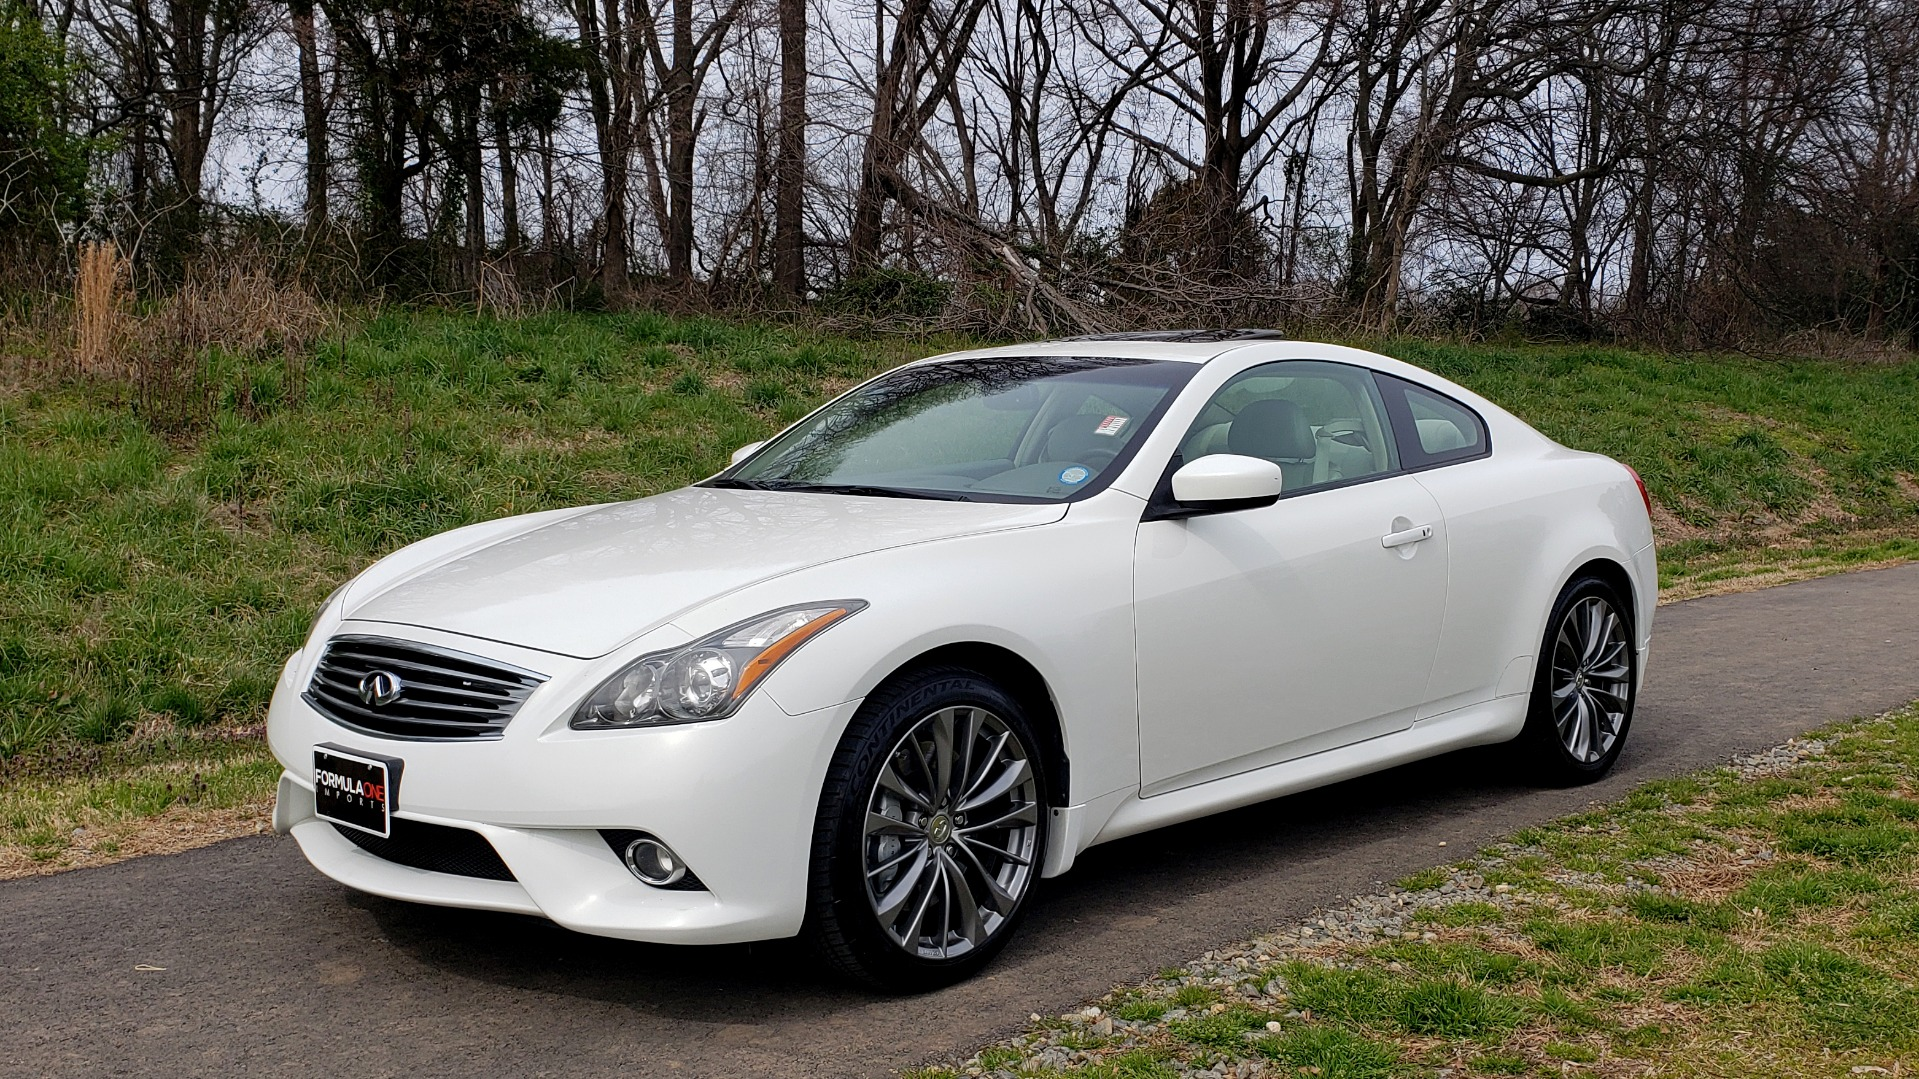 Used 2012 Infiniti G37 Coupe X AWD PREMIUM SPORT PKG / NAV / SUNROOF / REARVIEW for sale Sold at Formula Imports in Charlotte NC 28227 1